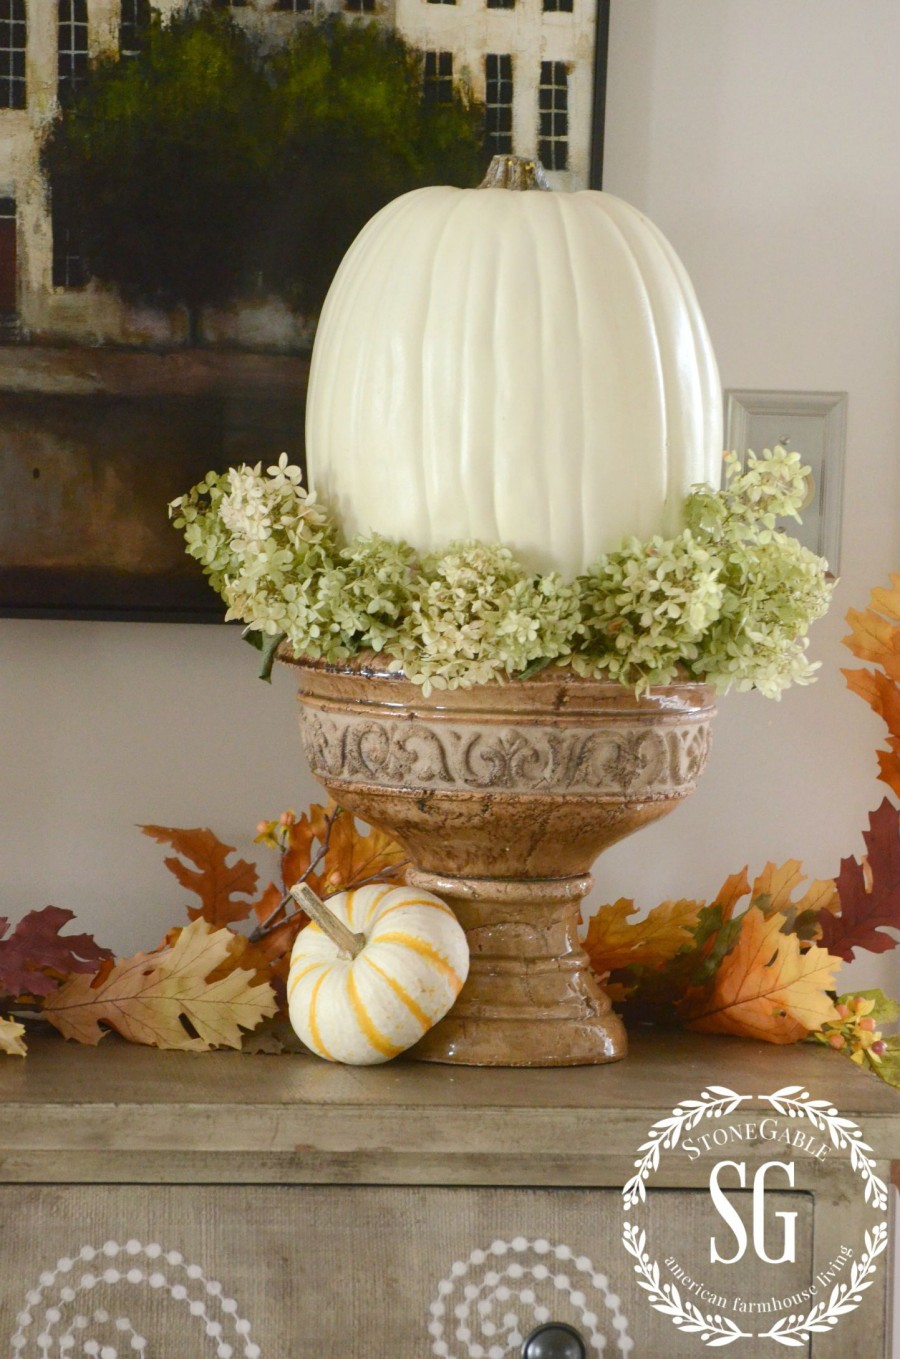 DECORATING WITH NATURAL FALL ELEMENTS-hydranges-white pumpkins-in-an-urn-stonegableblog.com